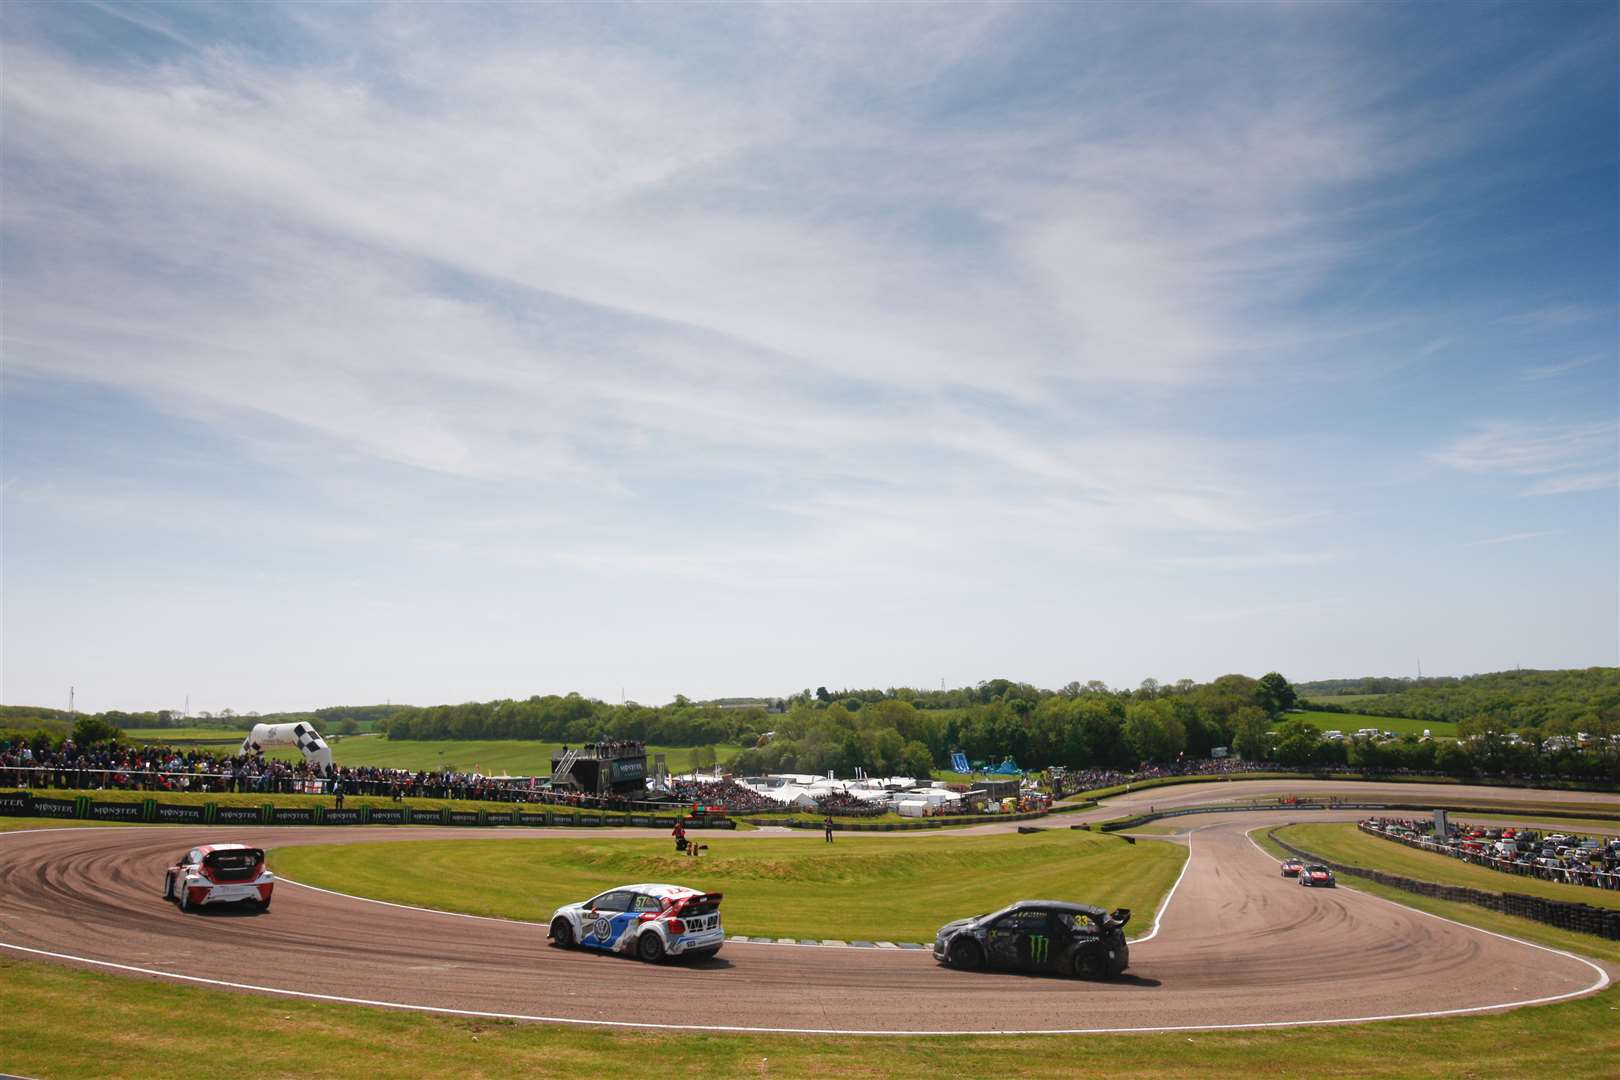 FIA World Rallycross Championship action from Lydden Hill